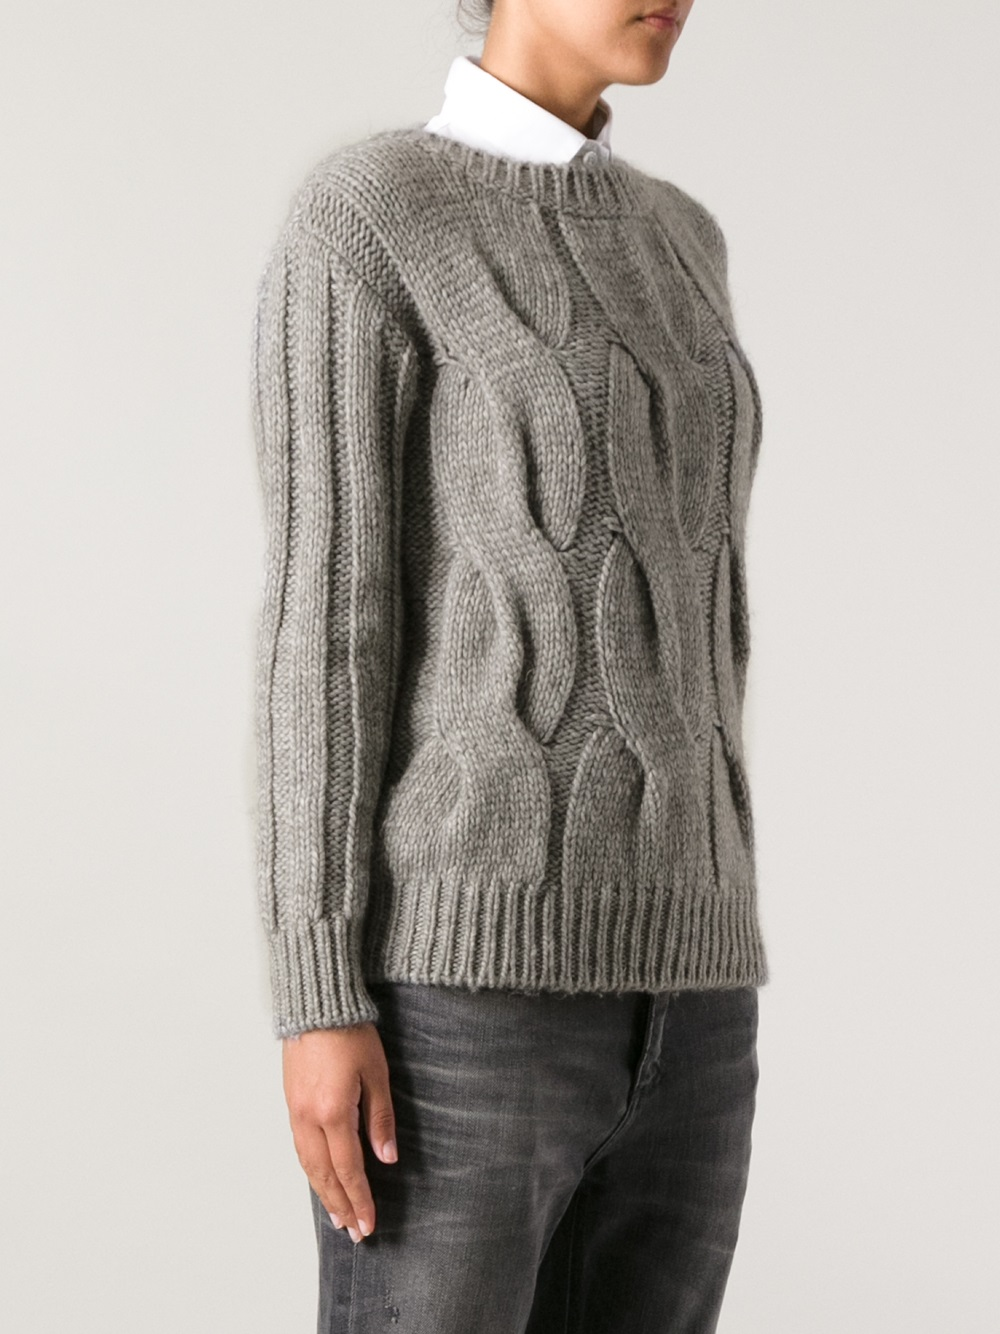 Moncler grenoble Chunky Cable Knit Sweater in Gray | Lyst